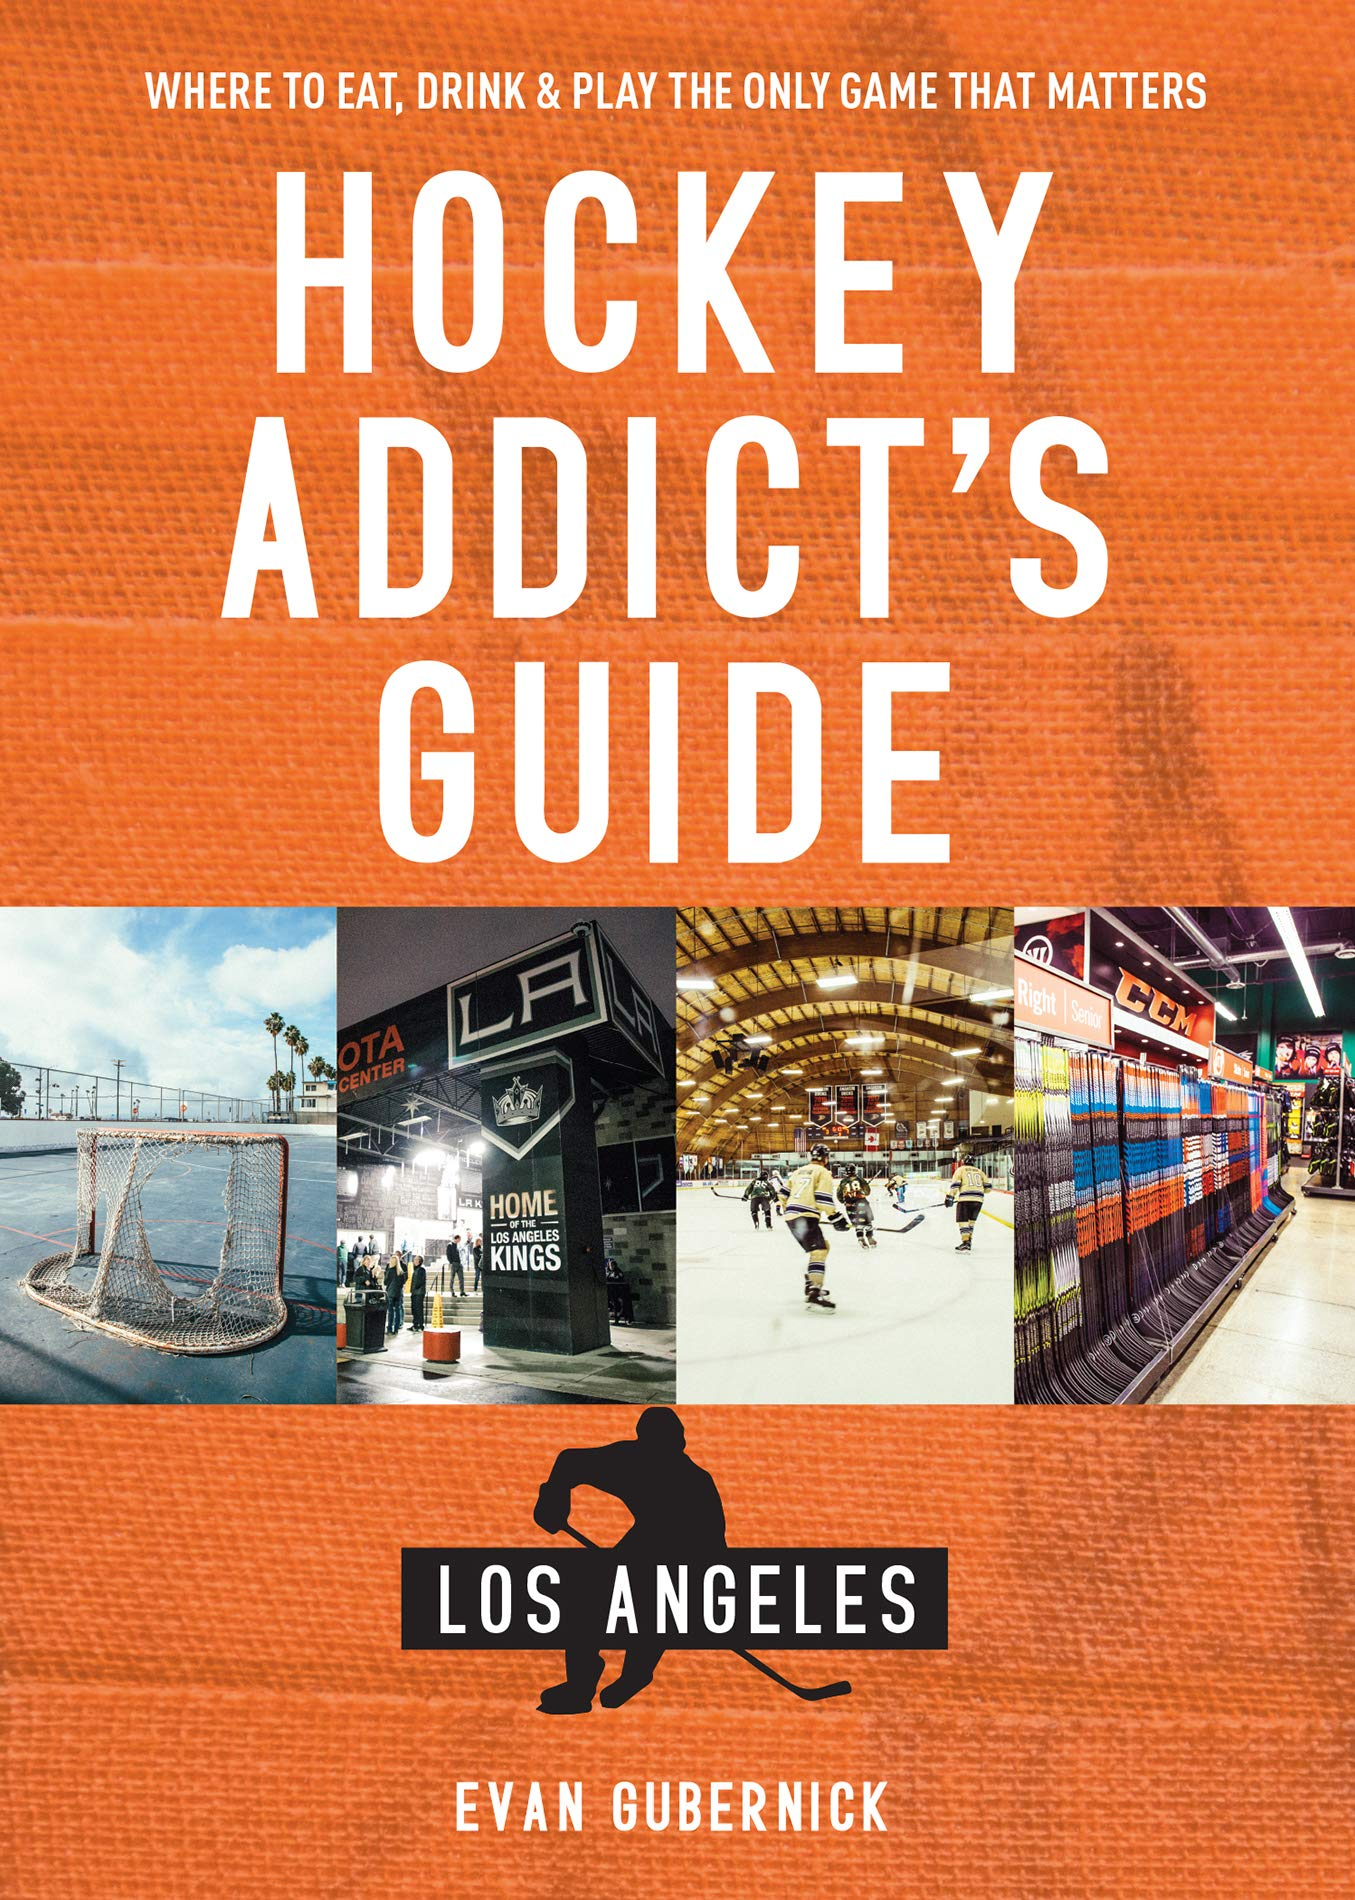 Download Hockey Addict's Guide Los Angeles: Where to Eat, Drink & Play the Only Game that Matters (Hockey Addict City Guides) (Engl...